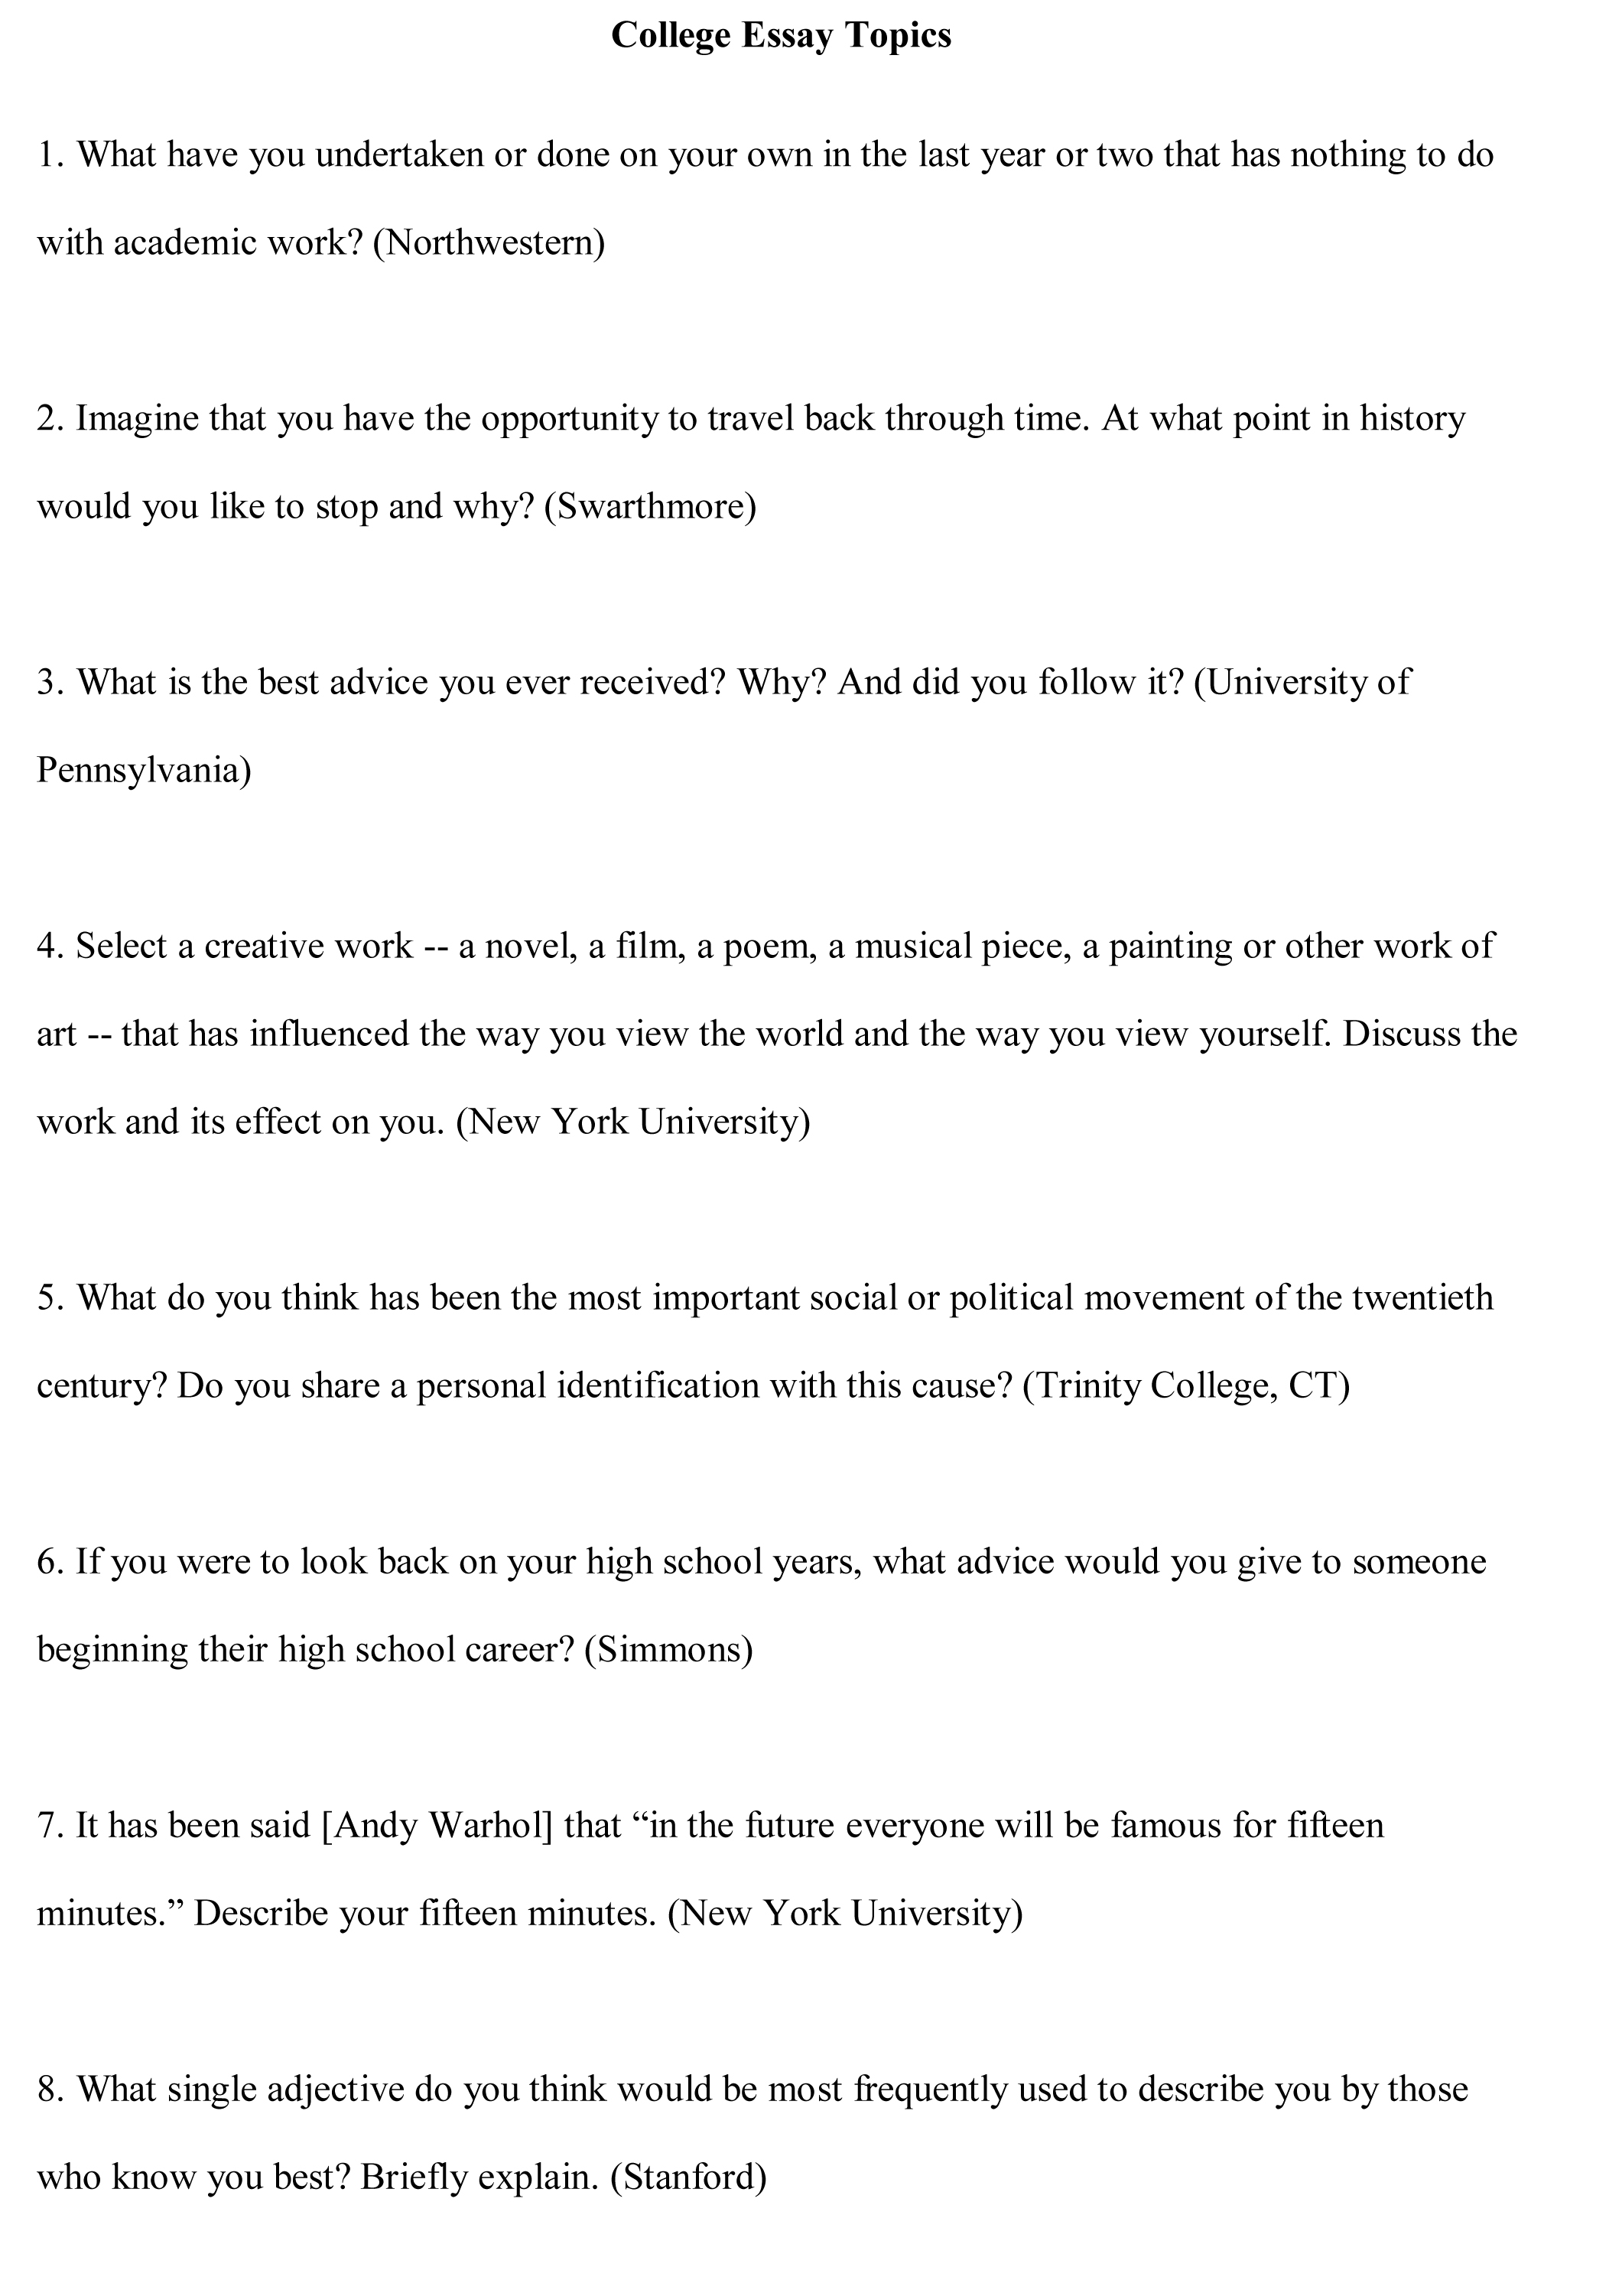 024 College Essay Topics Free Sample1 Example Dreaded Informative Ideas Rubric 6th Grade Full